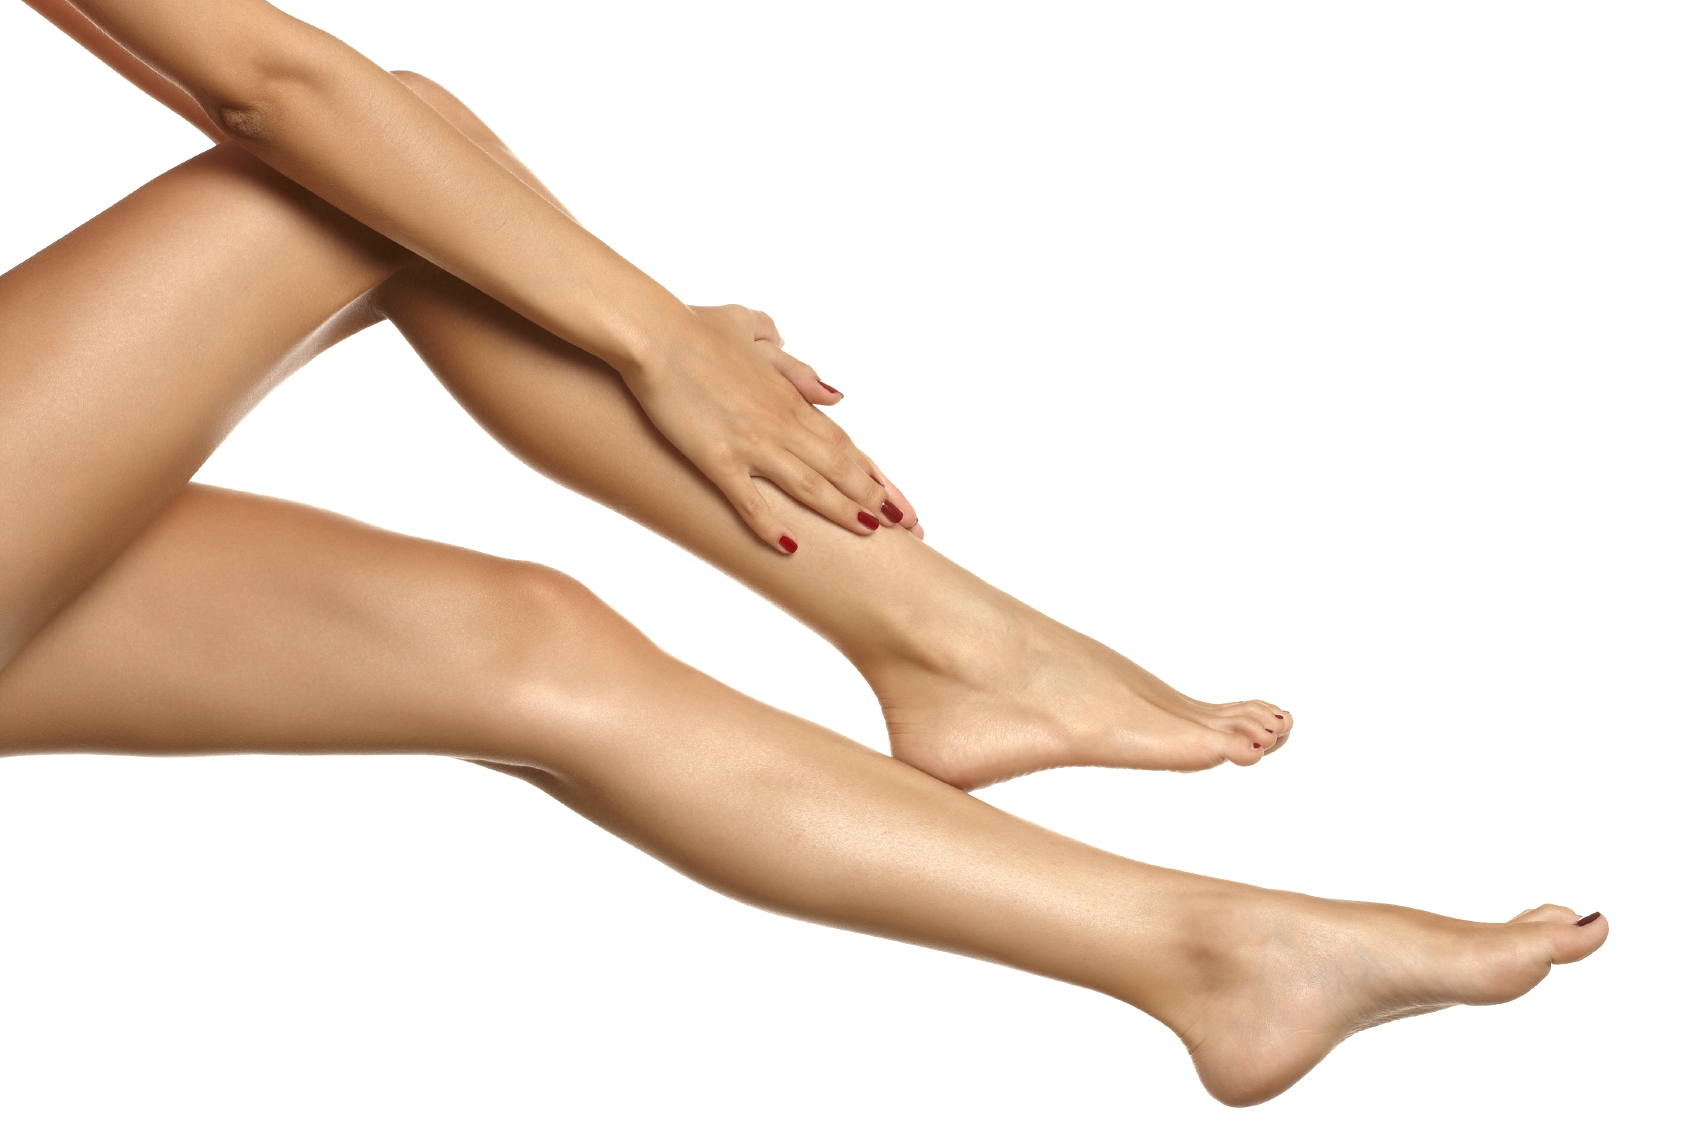 Some people are naturally more hairy than others.Miravue Skin Clinic offers the latest Laser Hair Removal treatment, administered by leading dermatology experts, which is virtually painless and have long lasting effects.